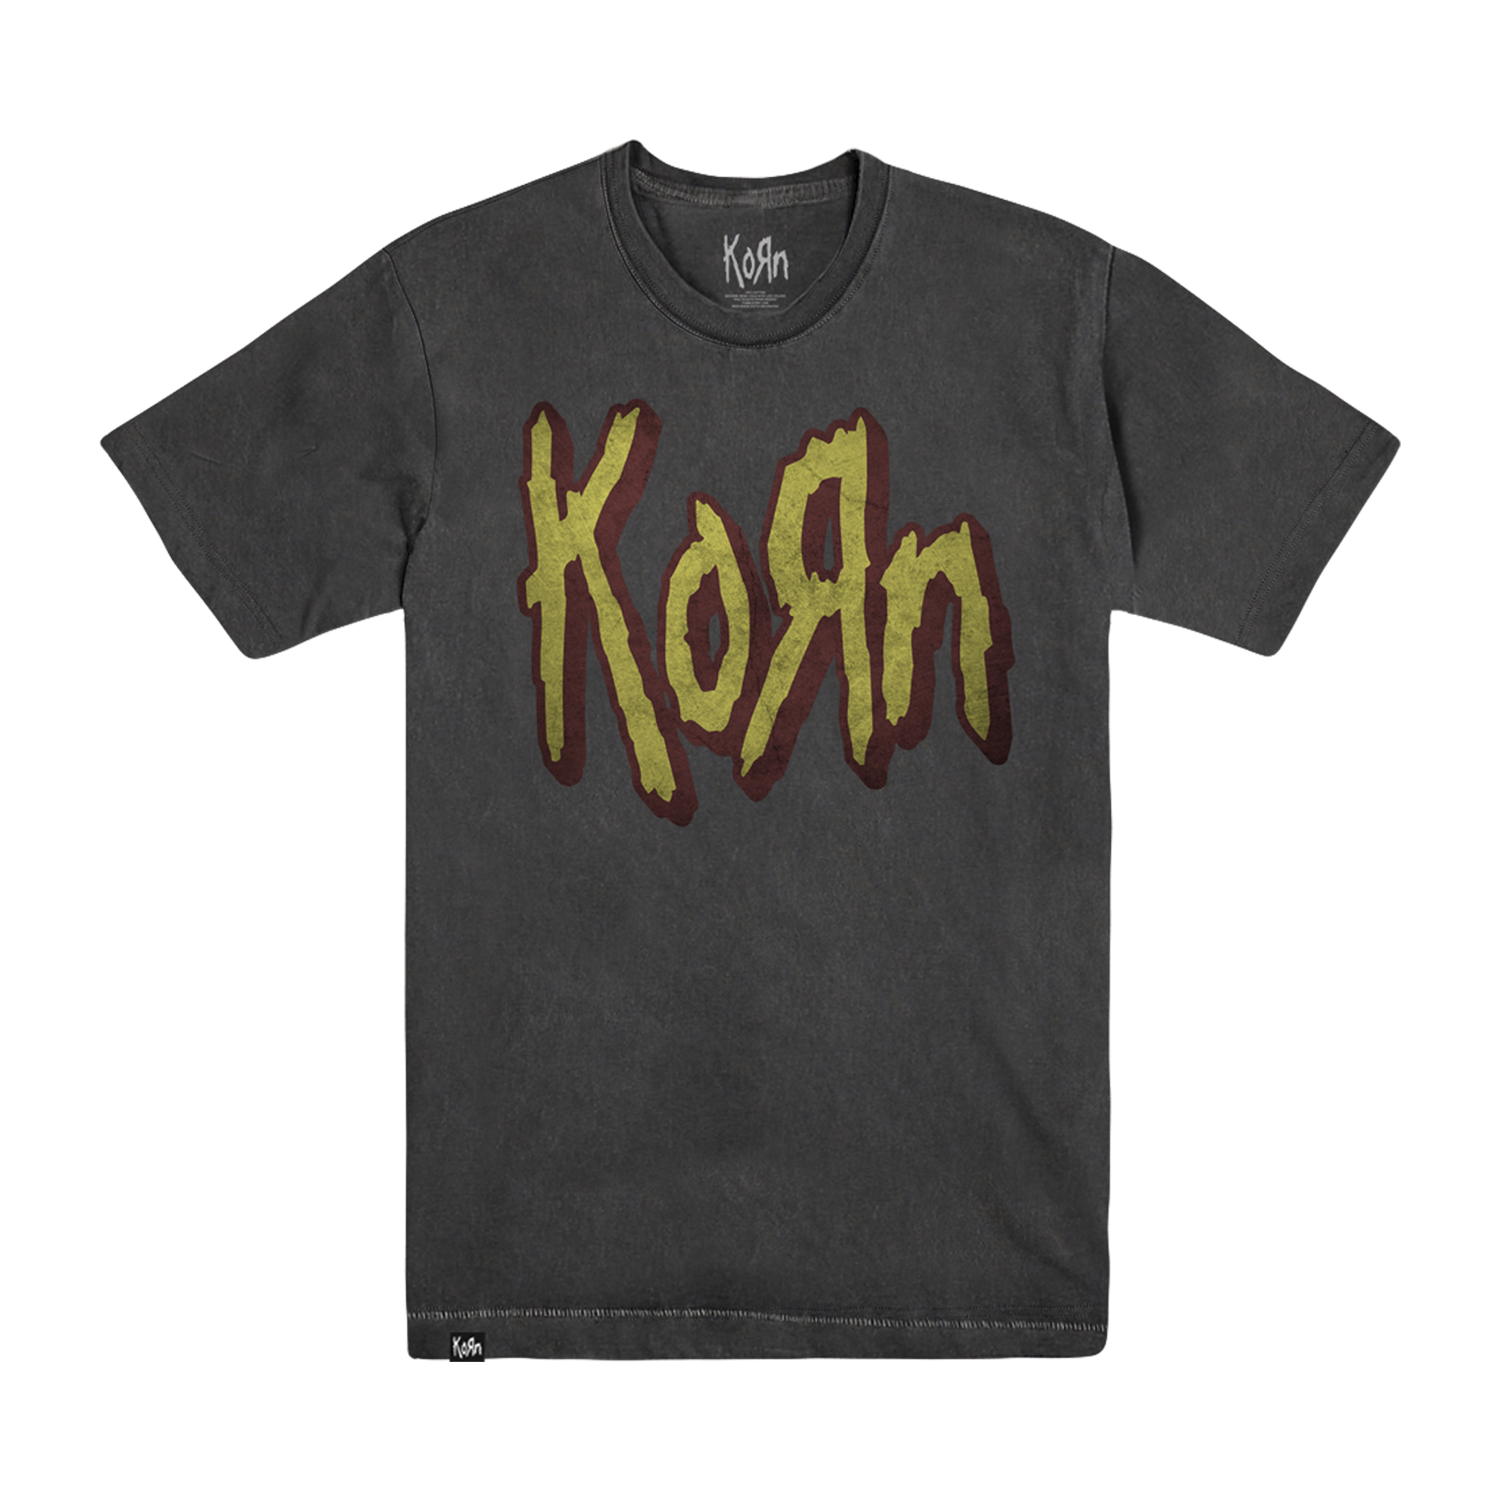 Official Korn 'Arena Oil Wash' Tee. Exclusive to kornlimited.com, Official Limited Edition, Official Merch, Official Store, Official Shop, Hoodie, Official Merchandise, T-shirt, Hoodie, Jacket, Shirts, Blind Jersey, Shirt, killermerch.com, Killer Merch